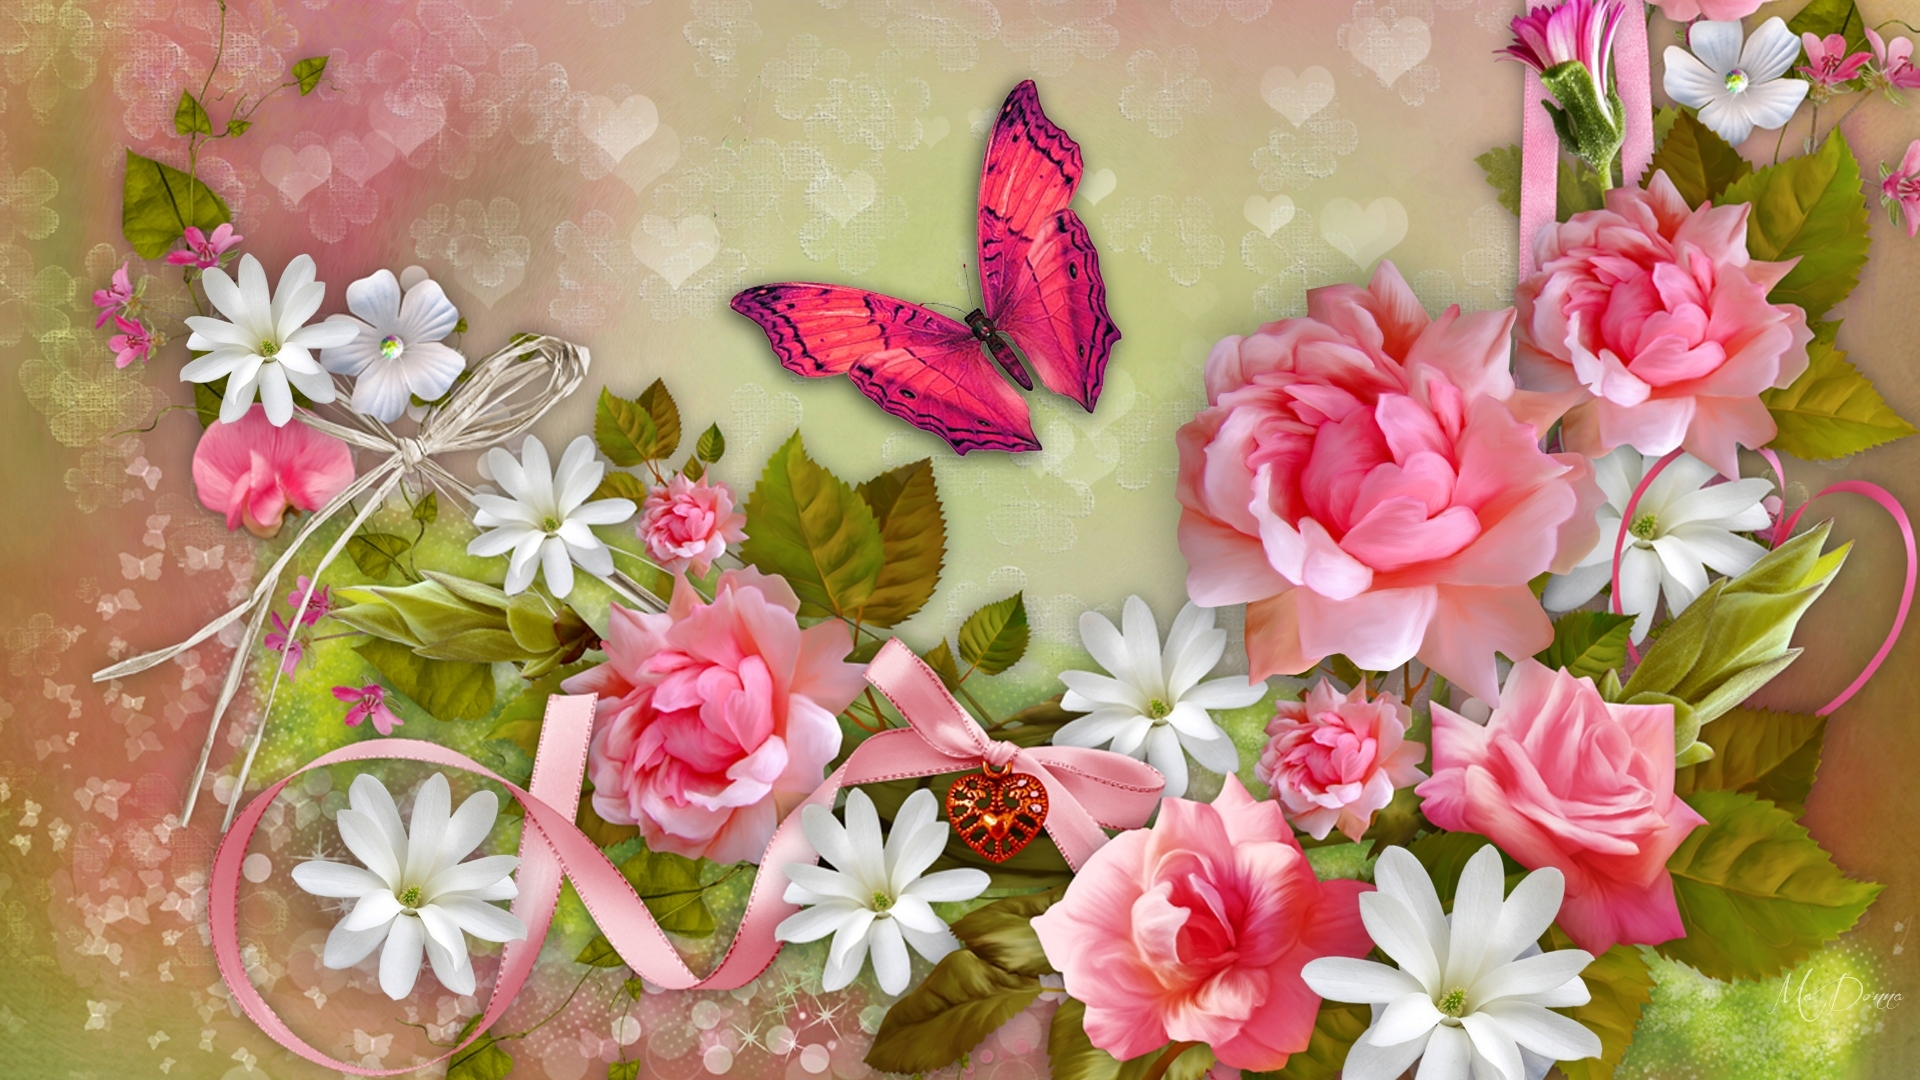 Butterfly And Flowers Hd Wallpaper Background Image